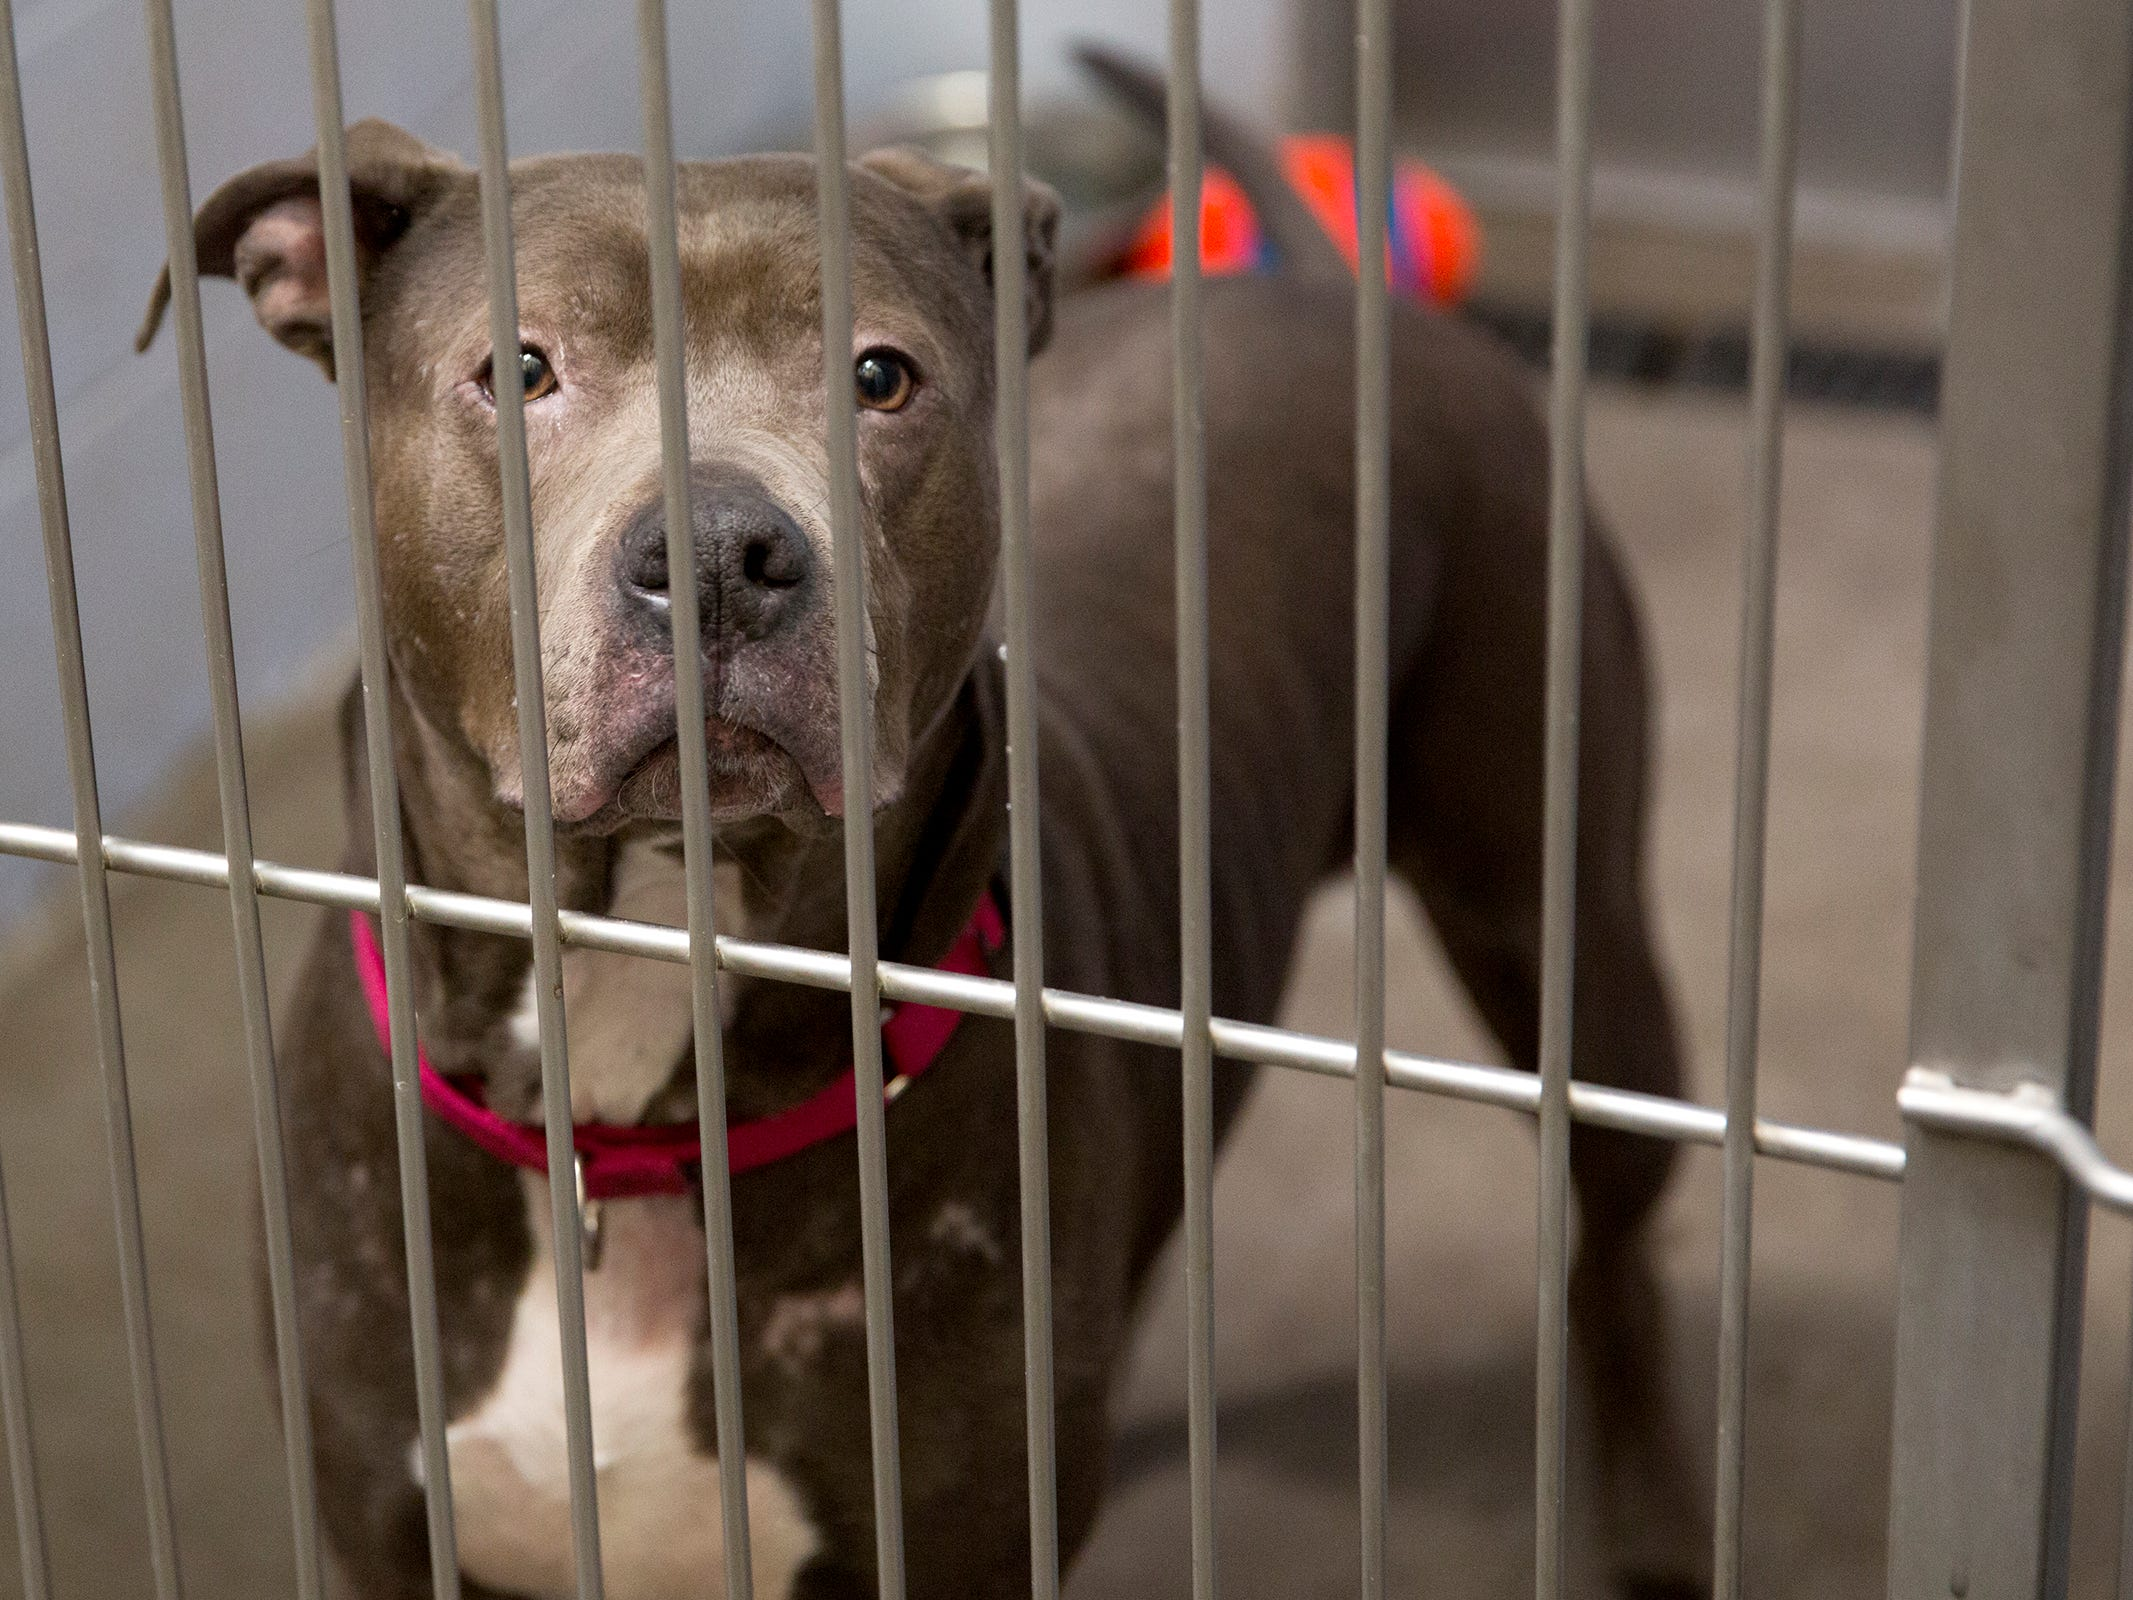 A dog looks through her cage as she waits to be adopted at the Willamette Humane Society in Salem on Monday, Dec. 31, 2018.